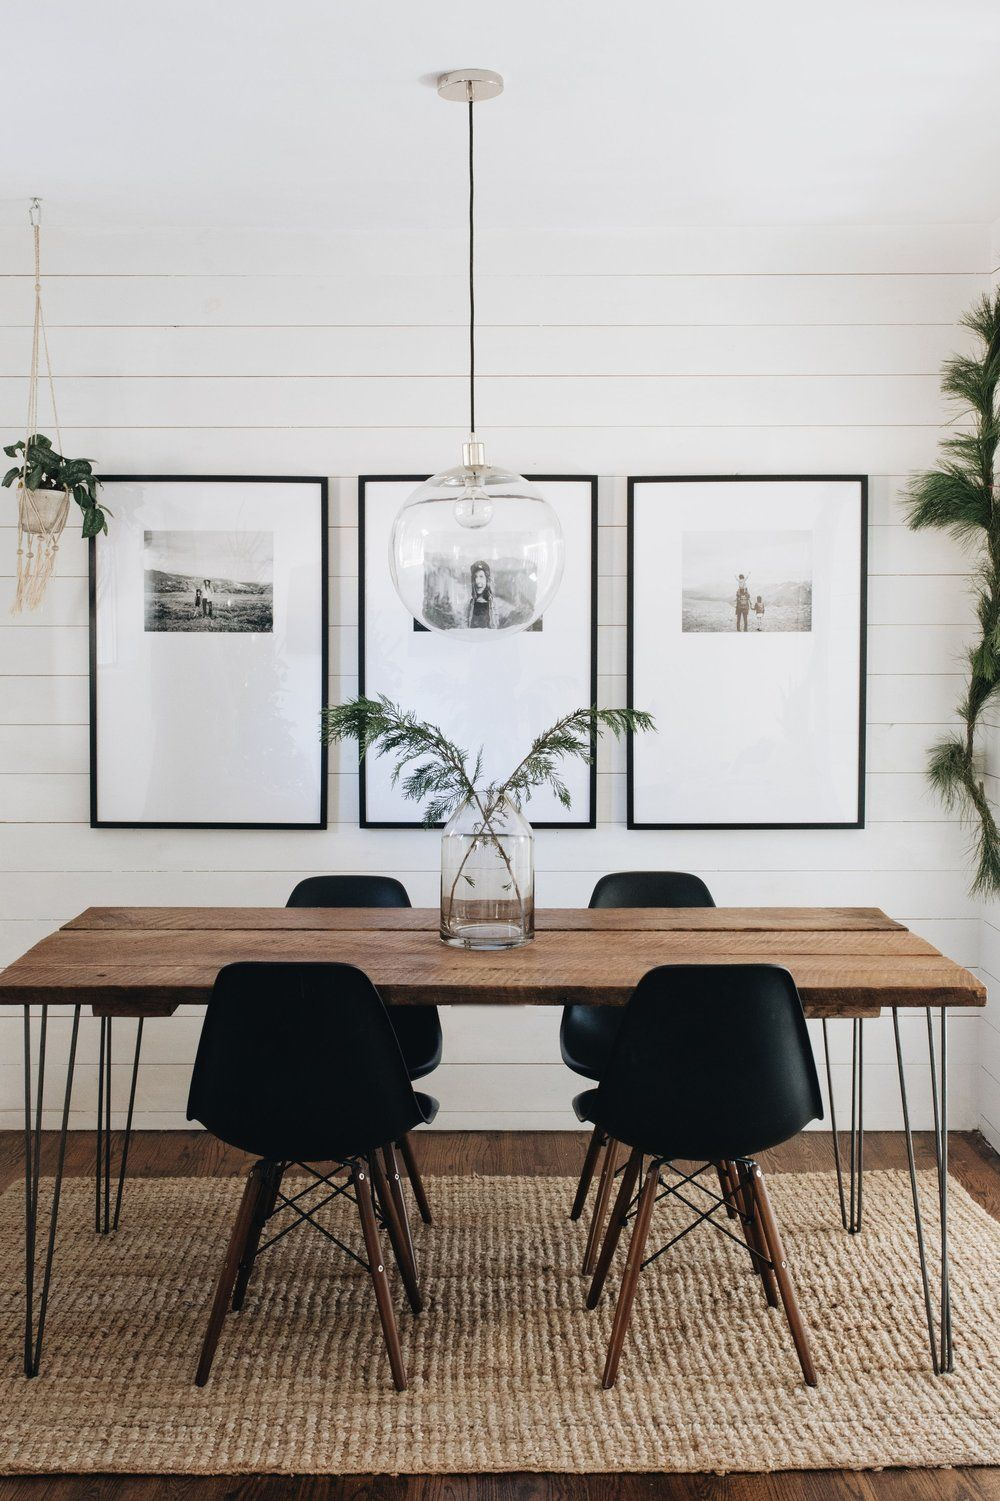 Merry Minimal A sneak peek at our simple holiday decor + get info and sources for our dining room frames #farmhousediningroom